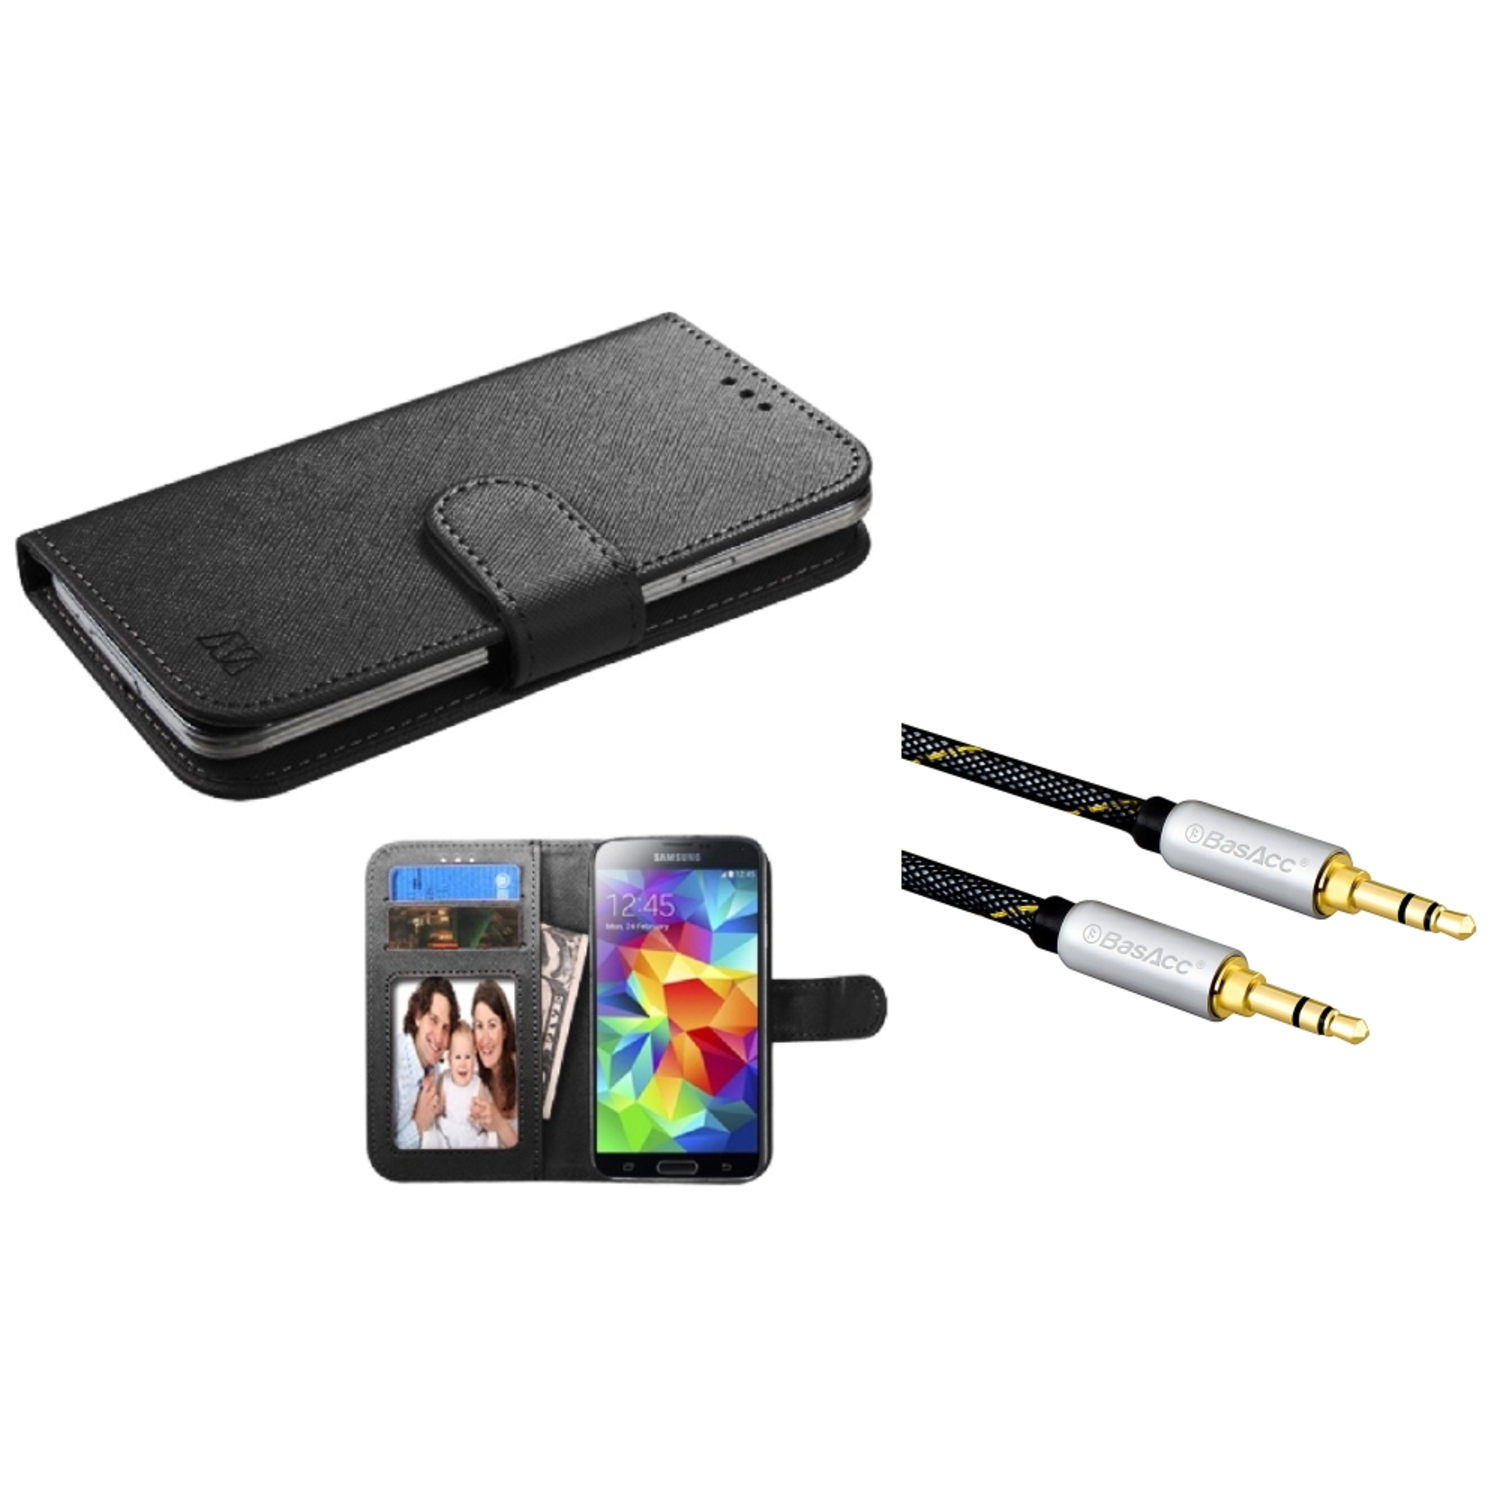 Insten Black Leather Wallet Case For iPhone SE 5 5C 5S Universal (+ 3.5mm Aux Auxiliary Audio Extension M/M Cable)